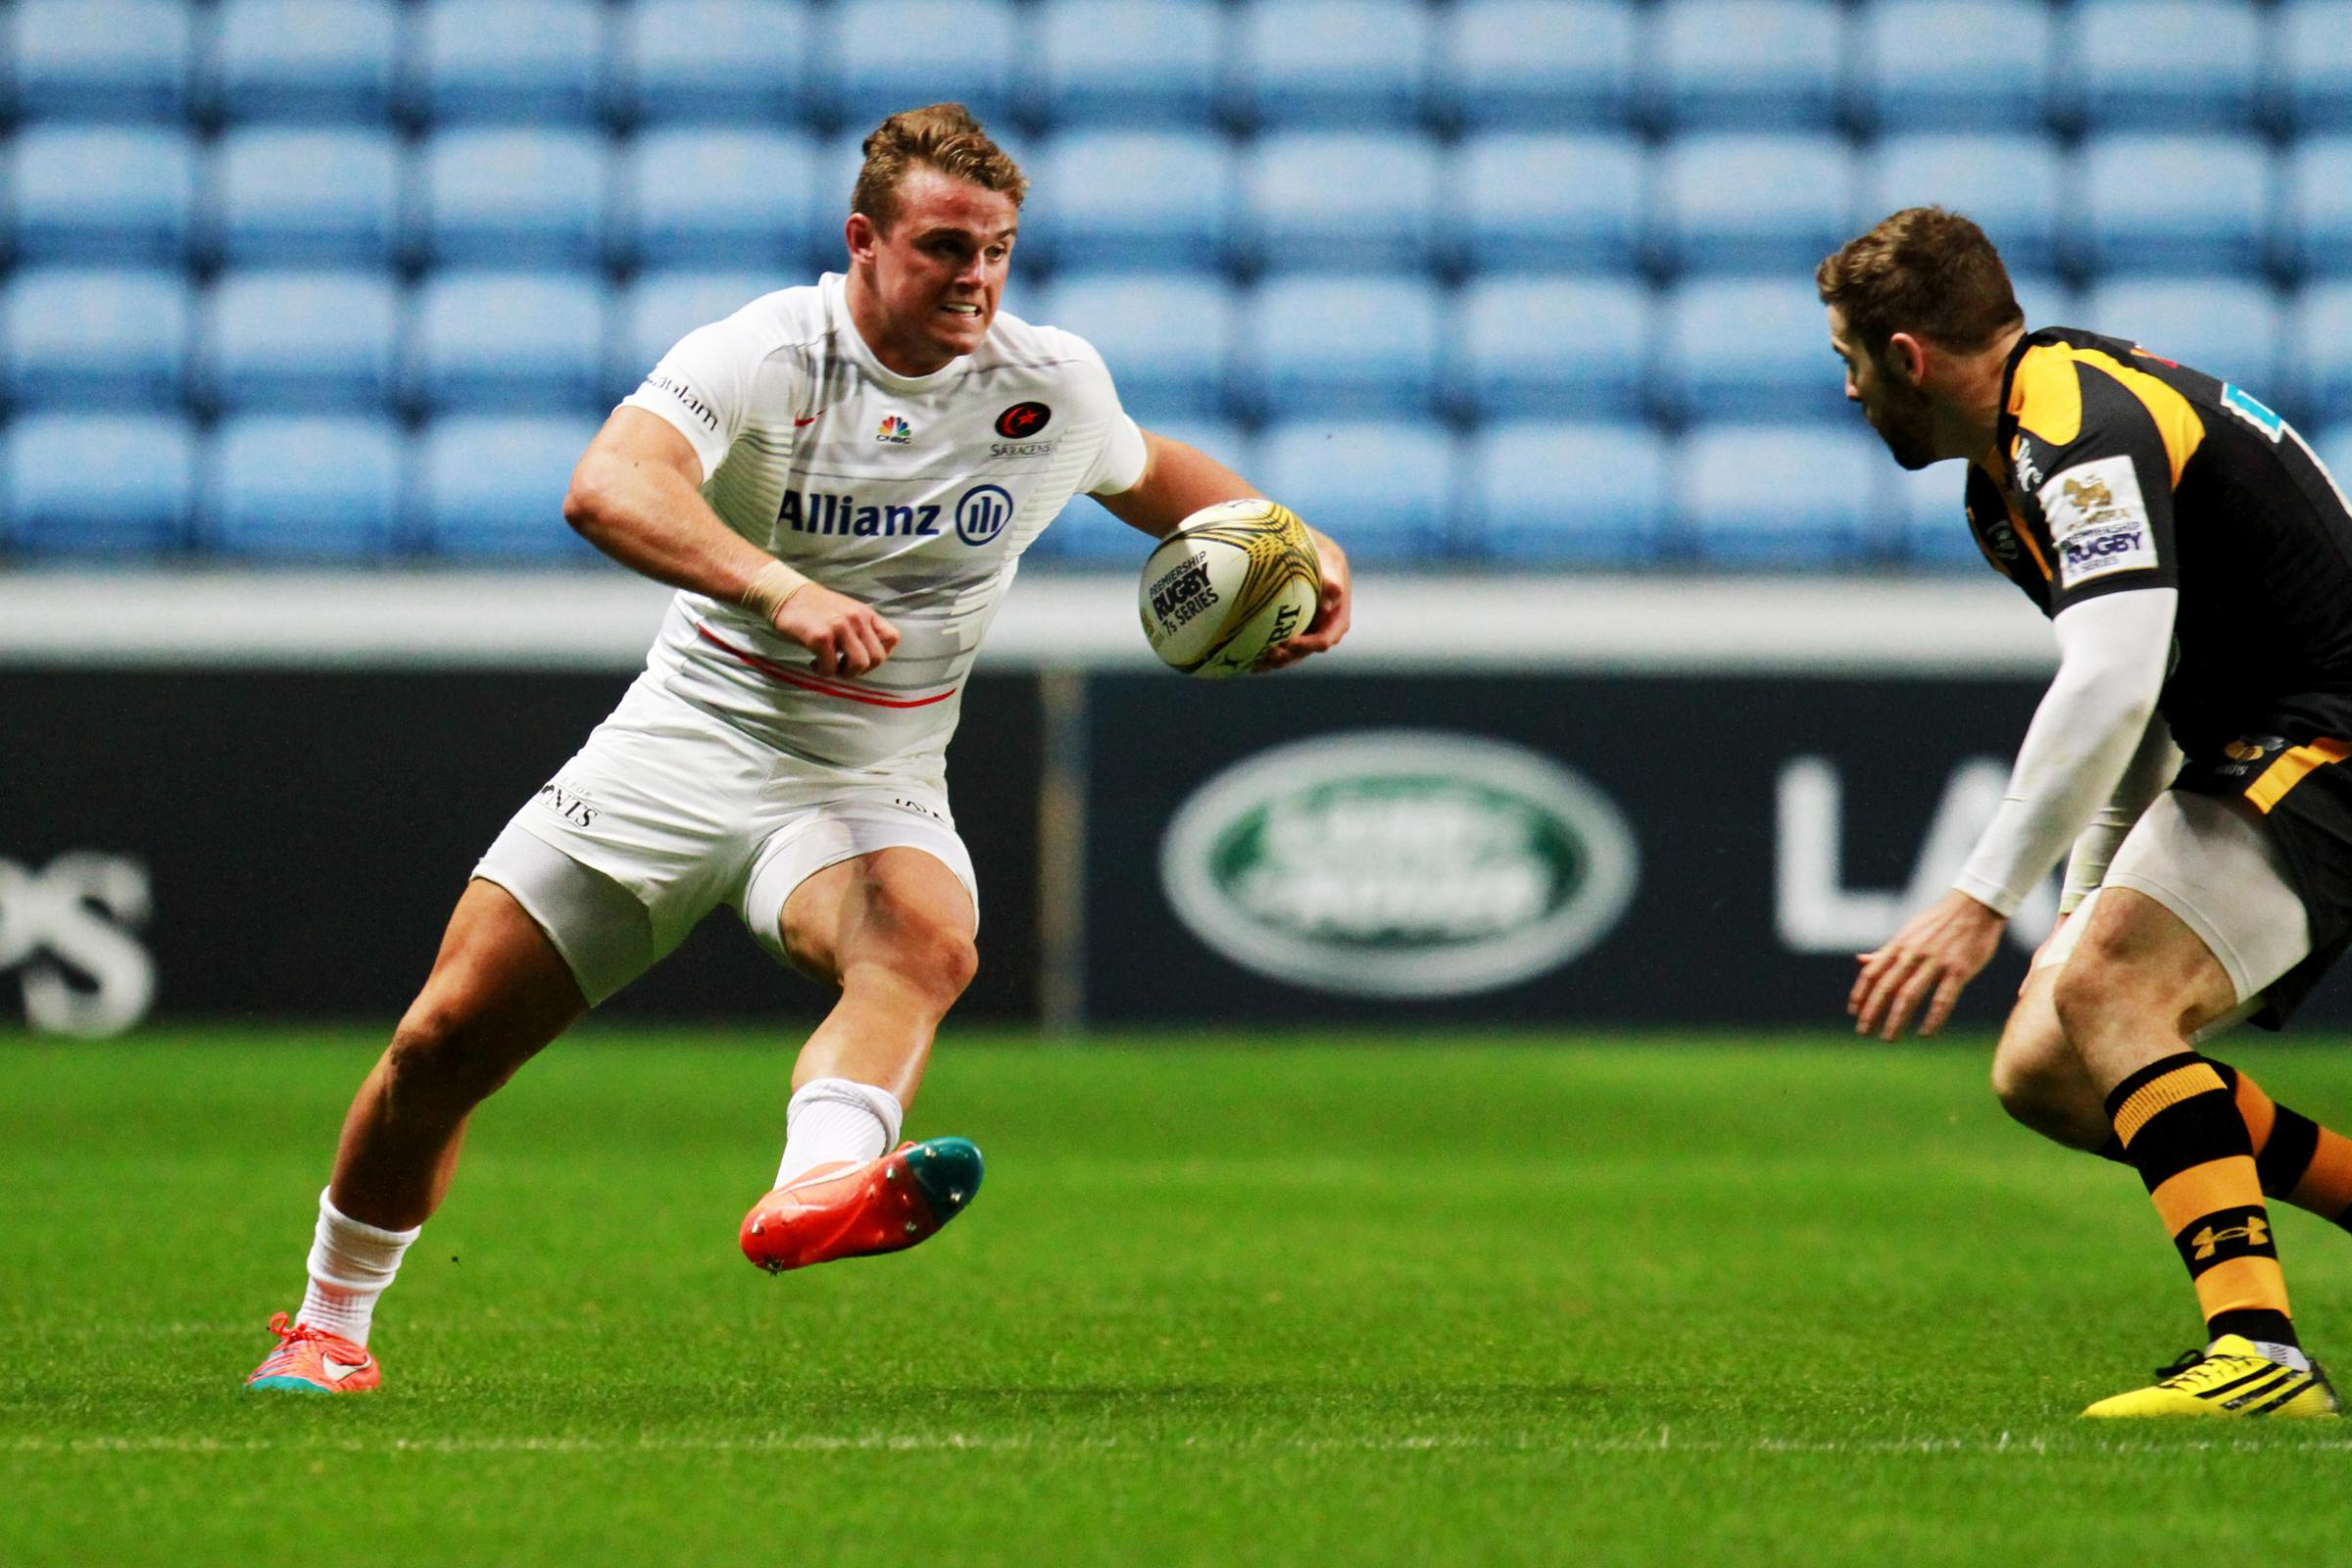 Ben Earl urges Saracens to put in 80 minutes of quality against Bath Rugby